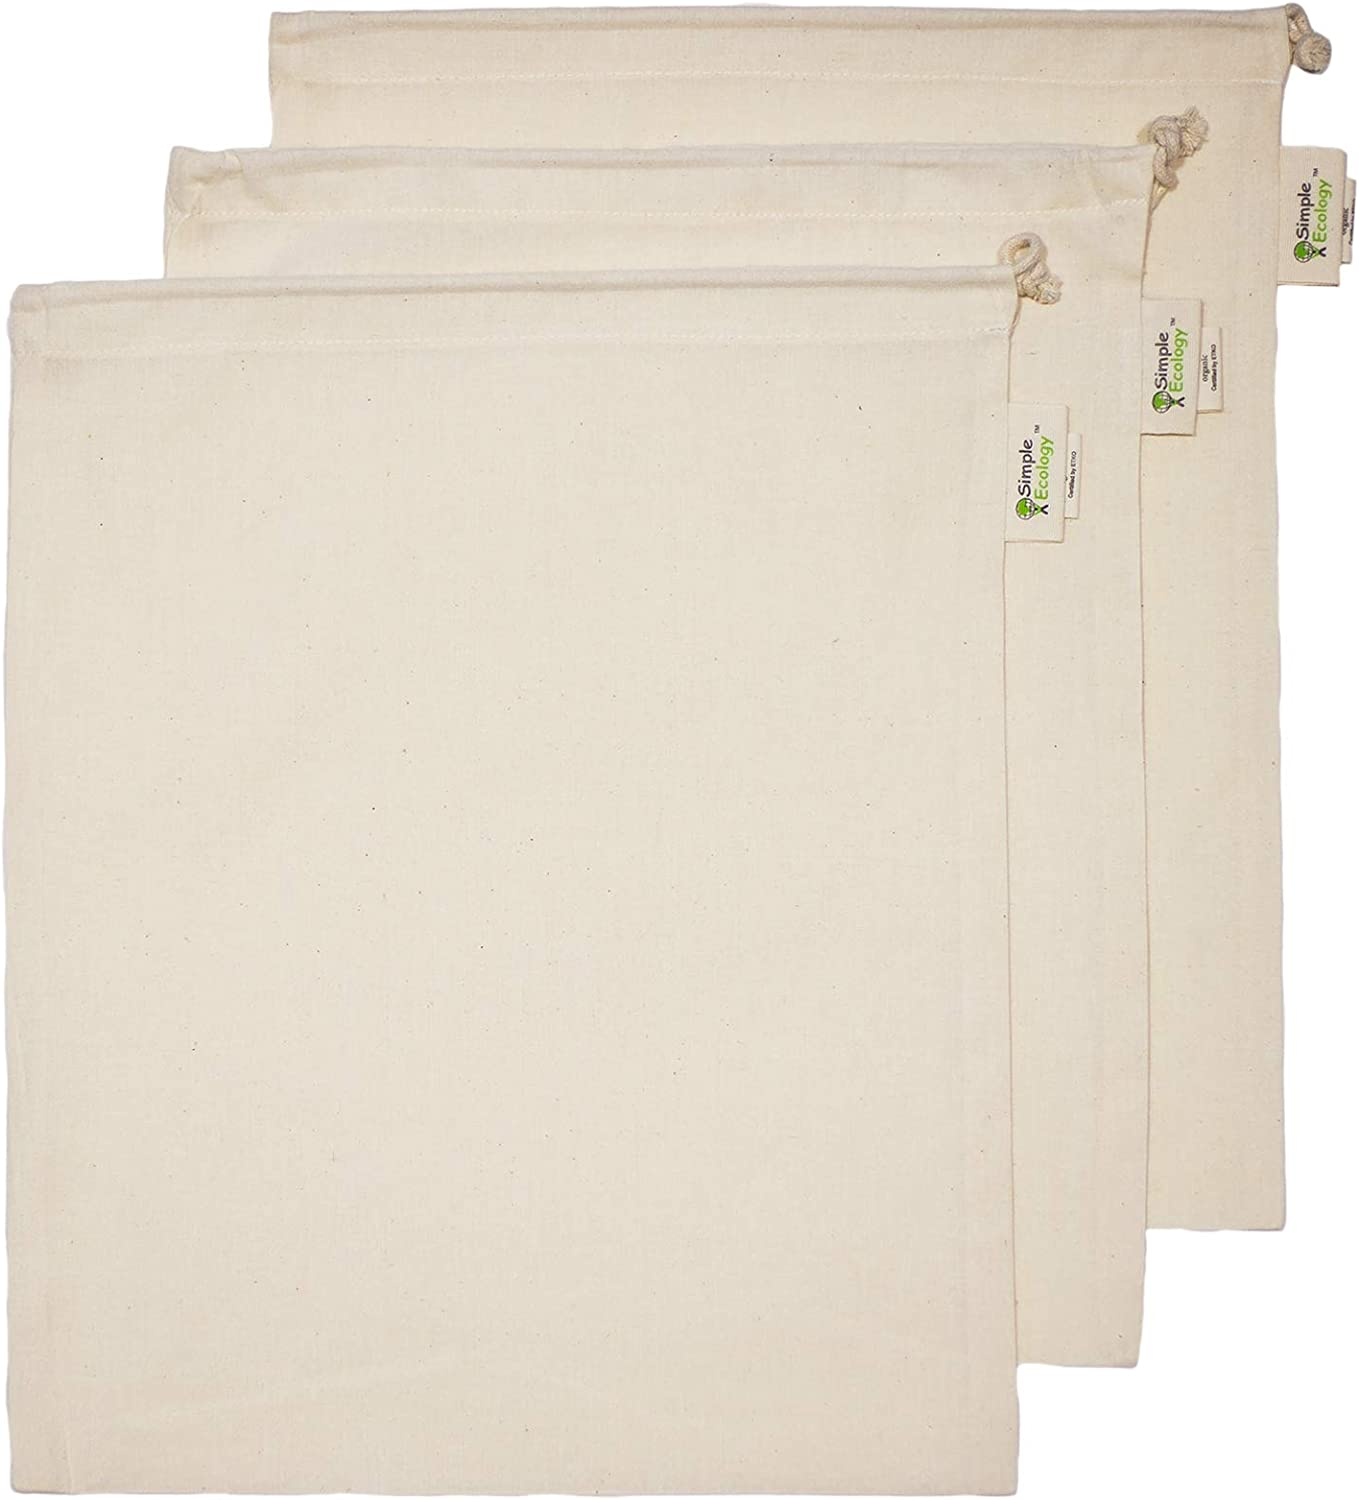 Simple Ecology Reusable Organic Cotton Muslin Grocery Shopping Produce Bags - Large 3 Pack (Heavy Duty, Washable, Produce Saver Bags, Food Storage, Bulk bin, Tare Weight tag, Drawstring)